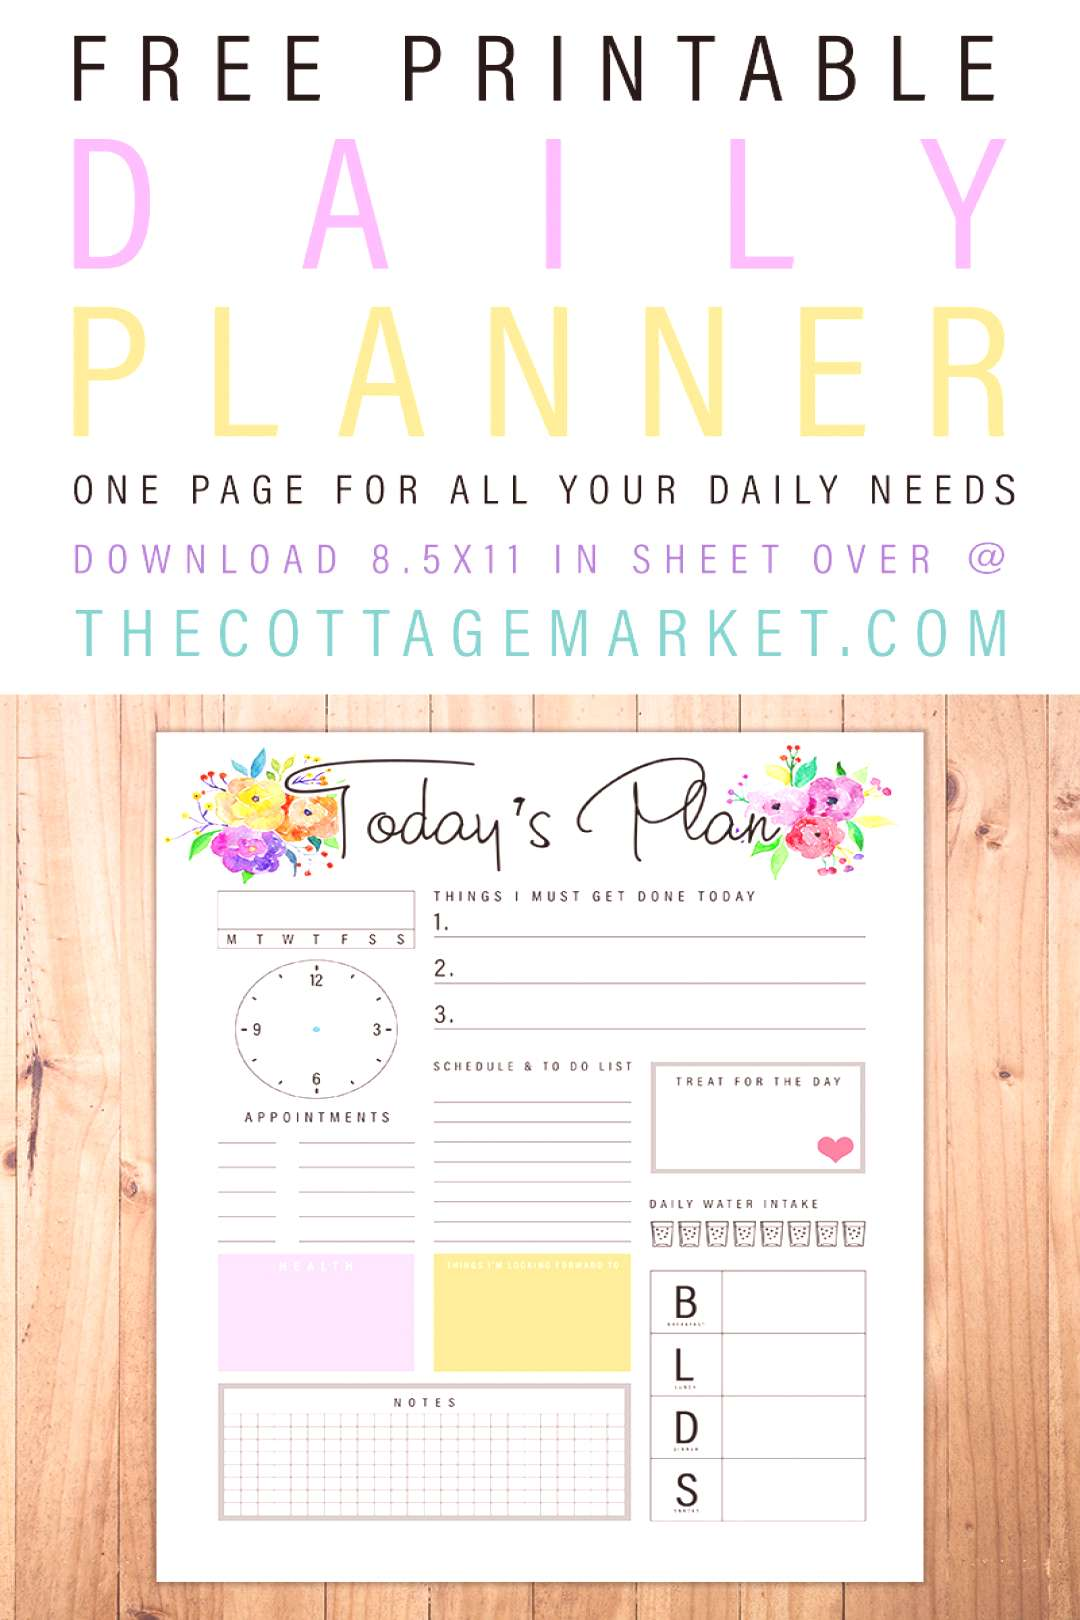 Free Printable Daily Planner /// One Page For All Your Daily Needs! - The Cottage Market